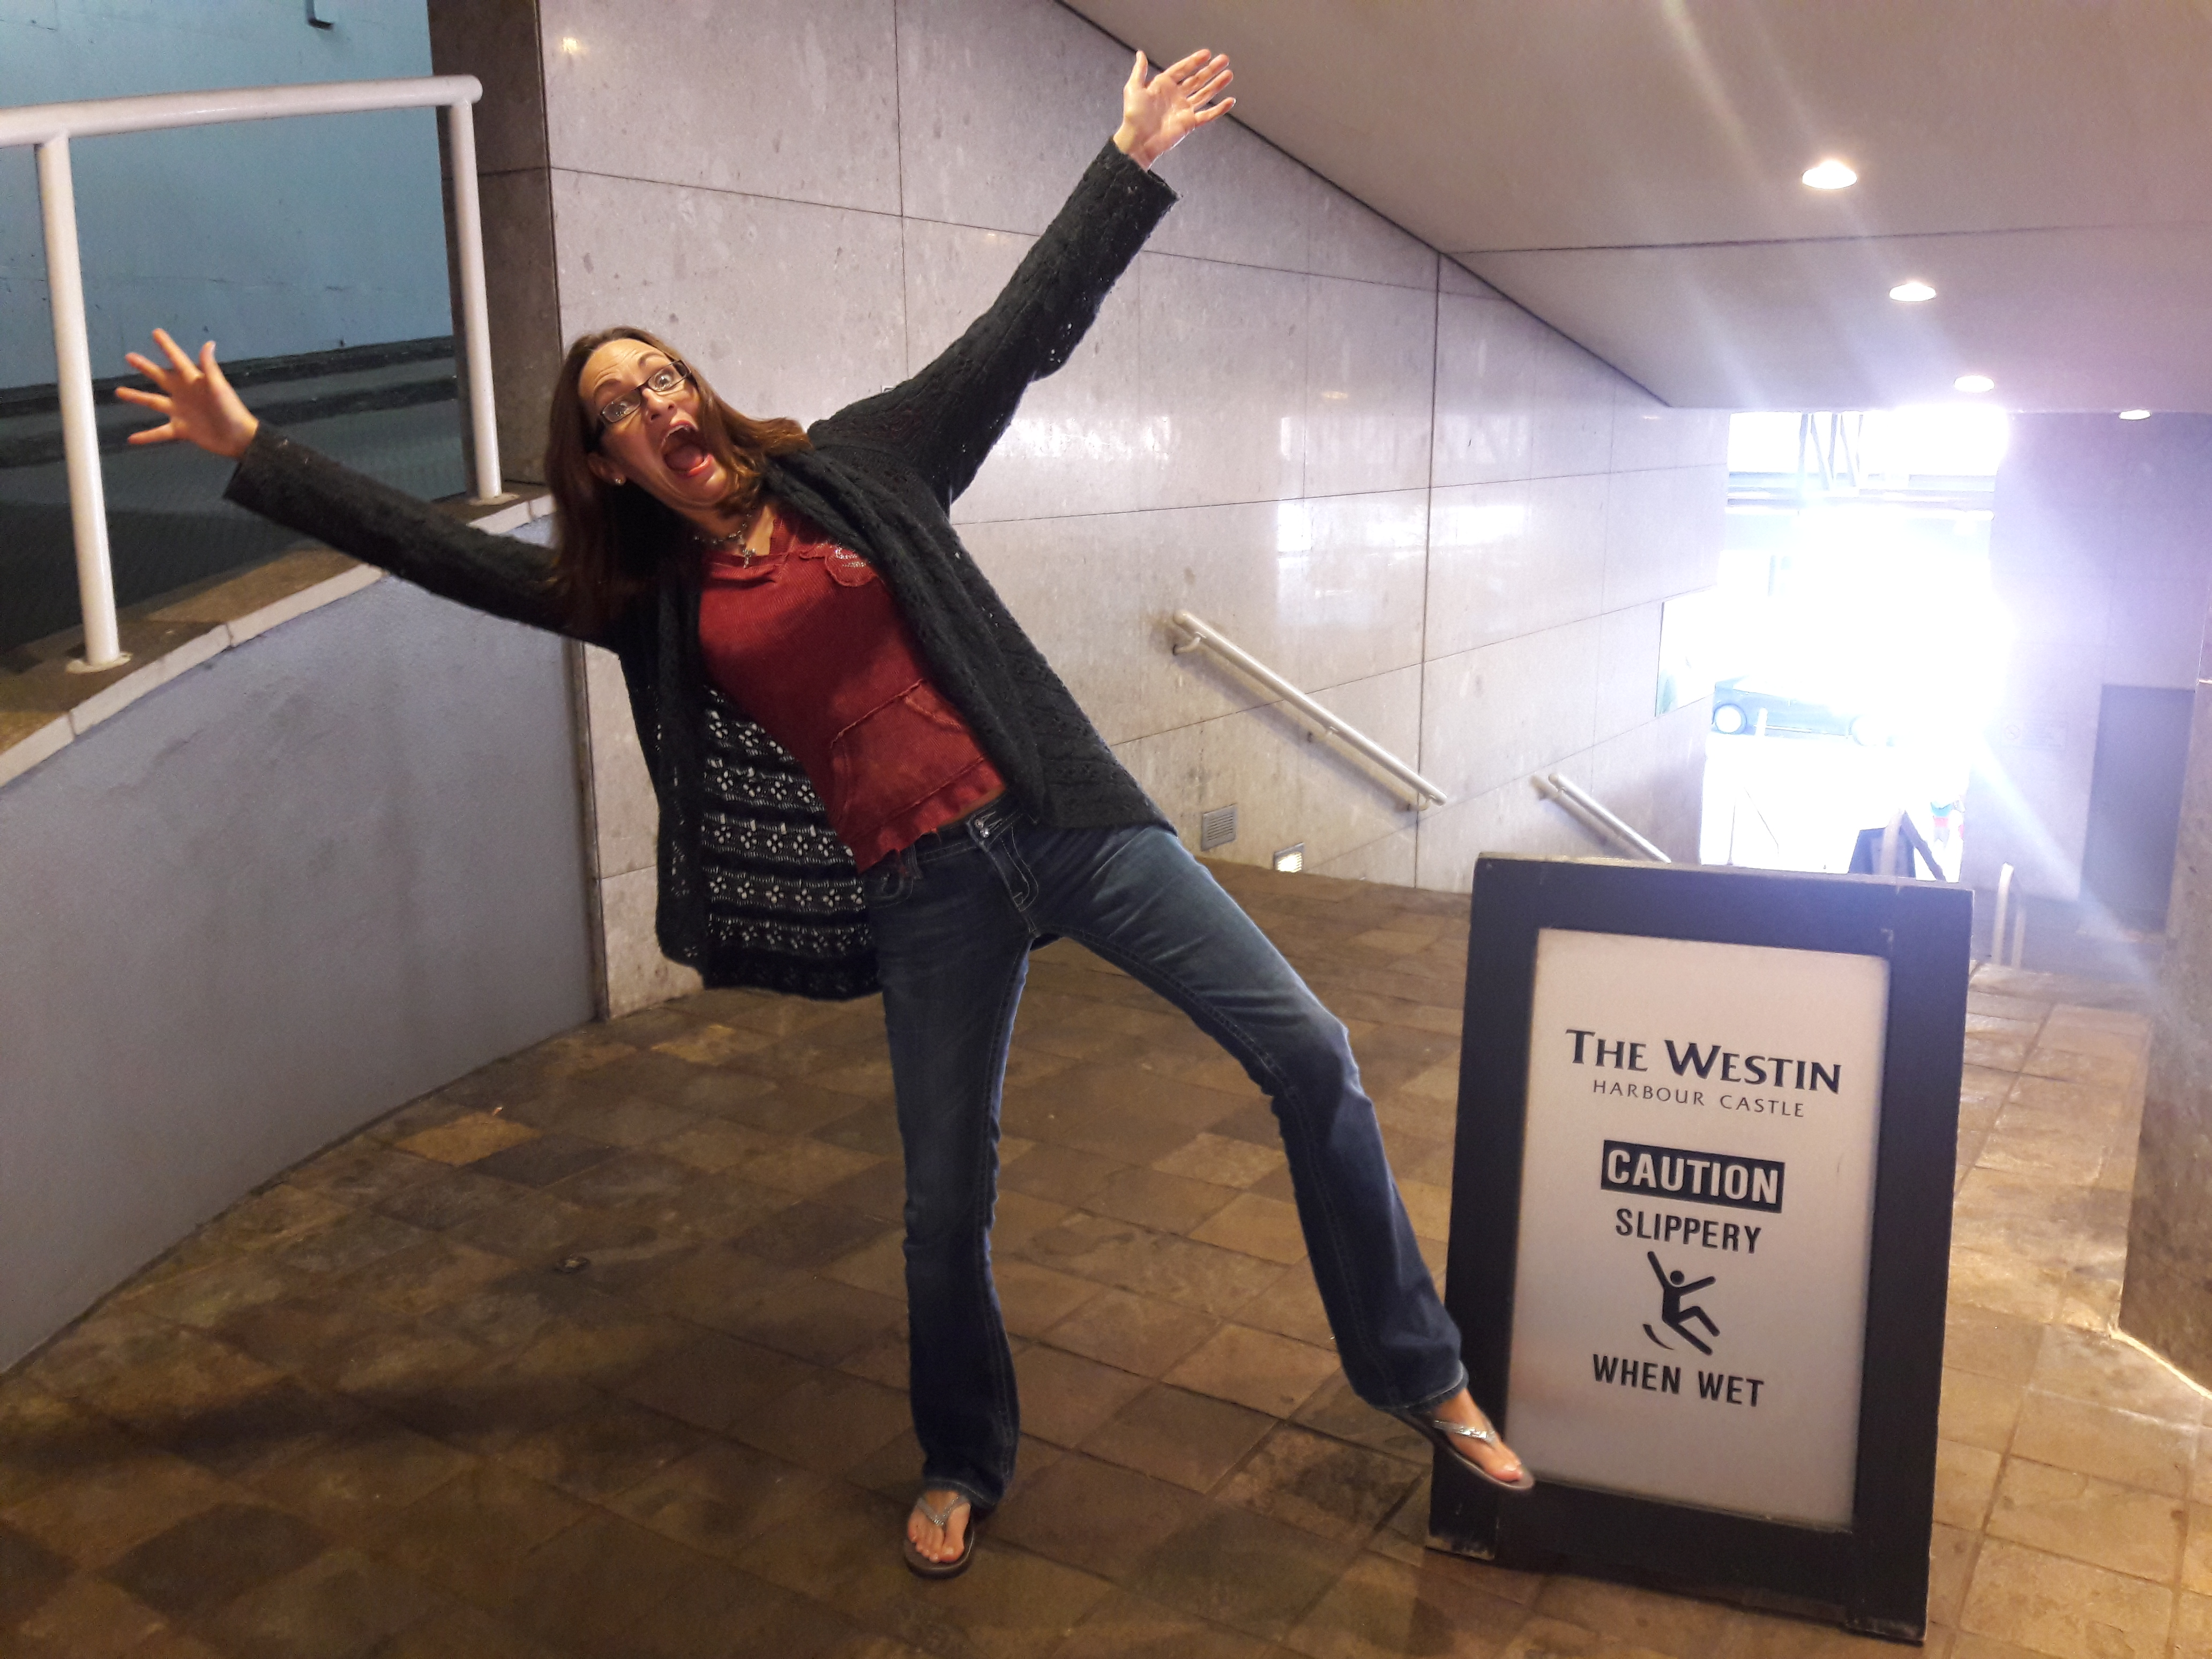 Heather Hundhausen joking about to fall on a wet floor, symbolizing the needed inspiration to hold life light through loving yourself quotes